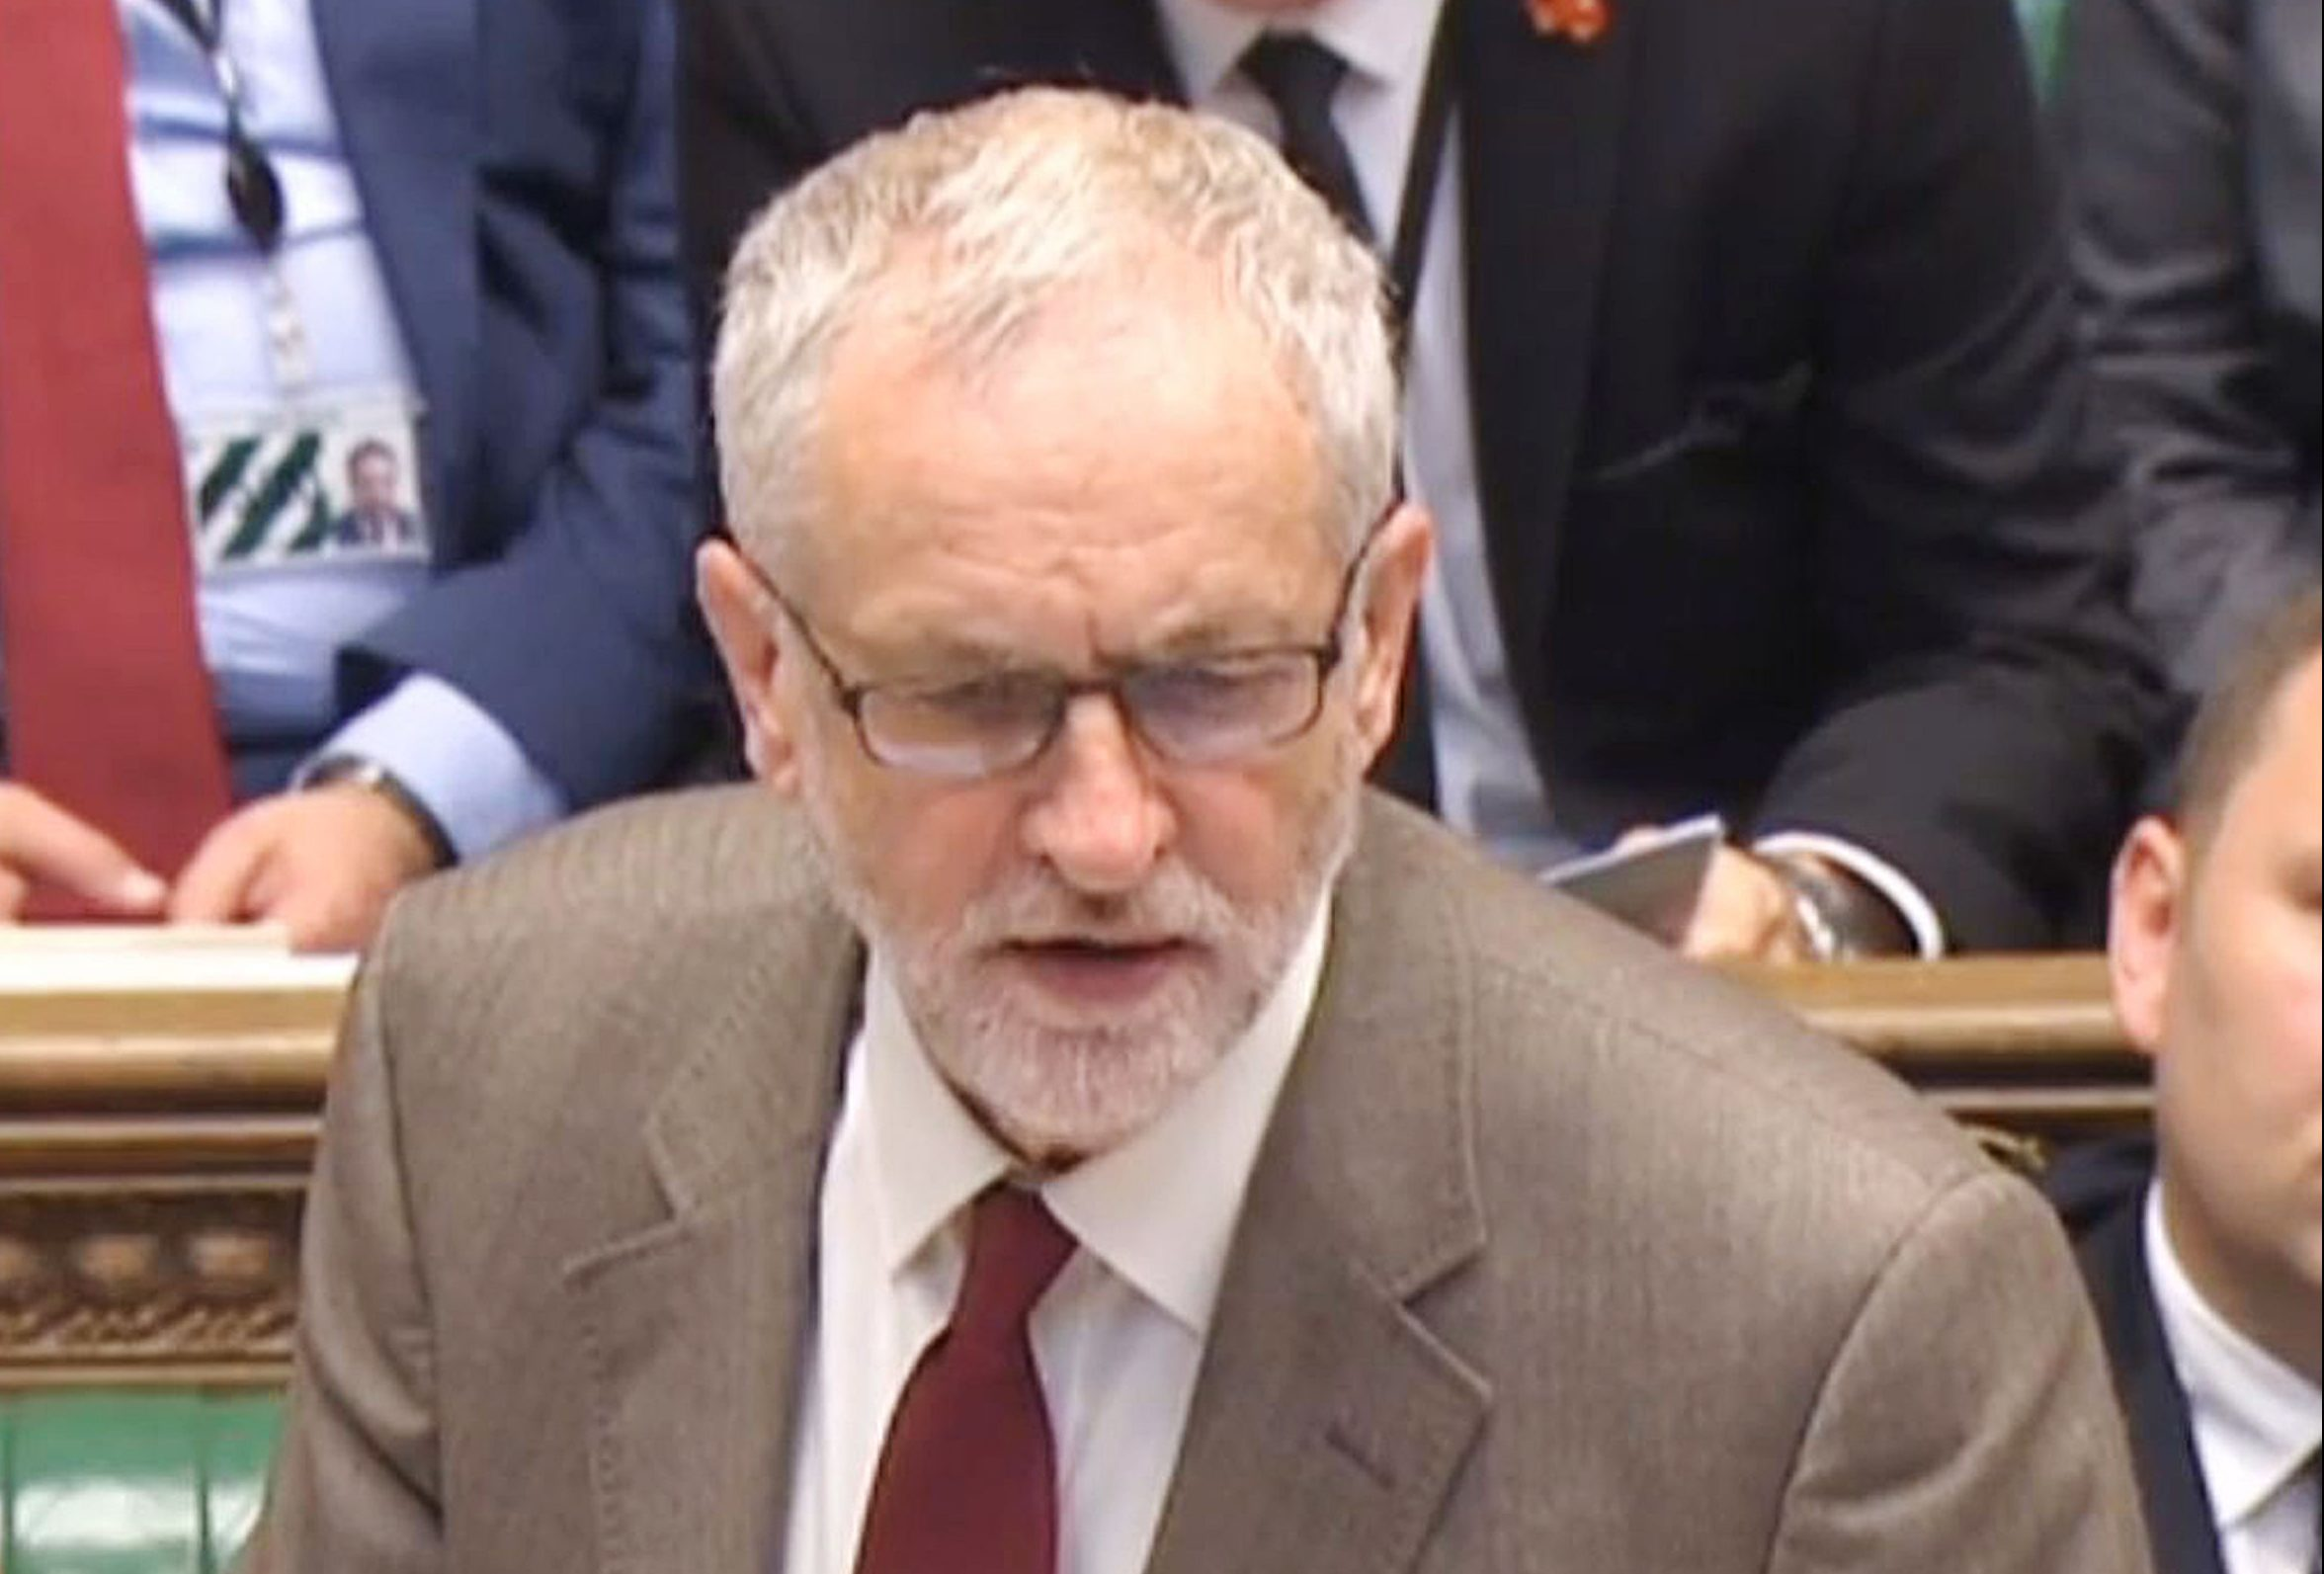 Labour leader Jeremy Corbyn speaking during Prime Minister's Questions.